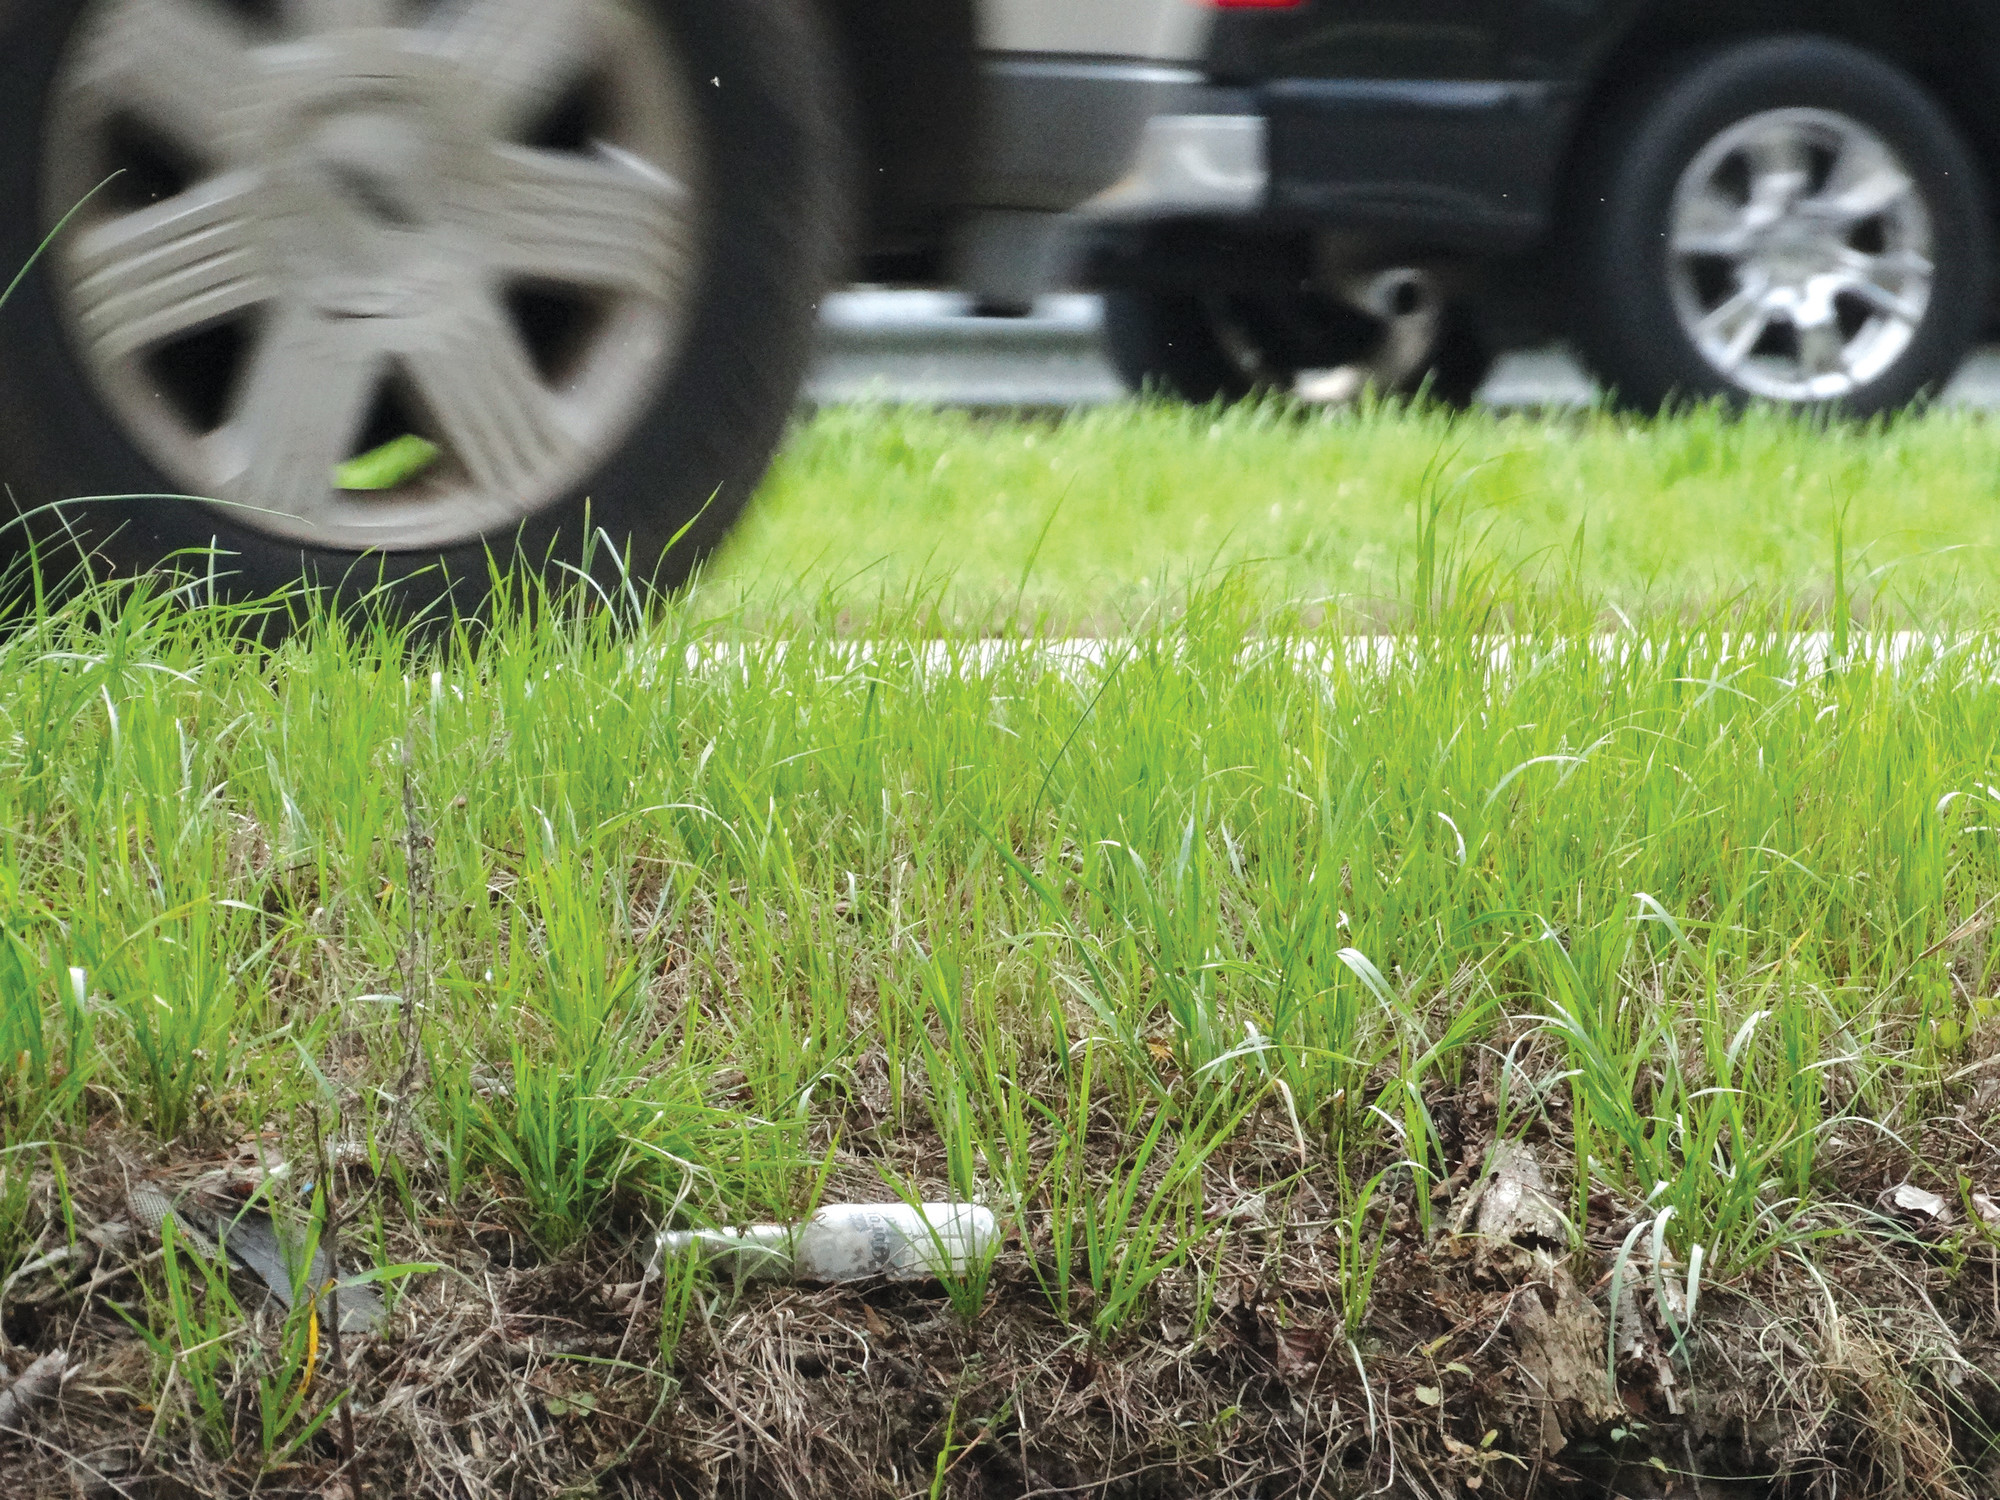 Roadways across Sumter accumulate trash thrown from vehicles.